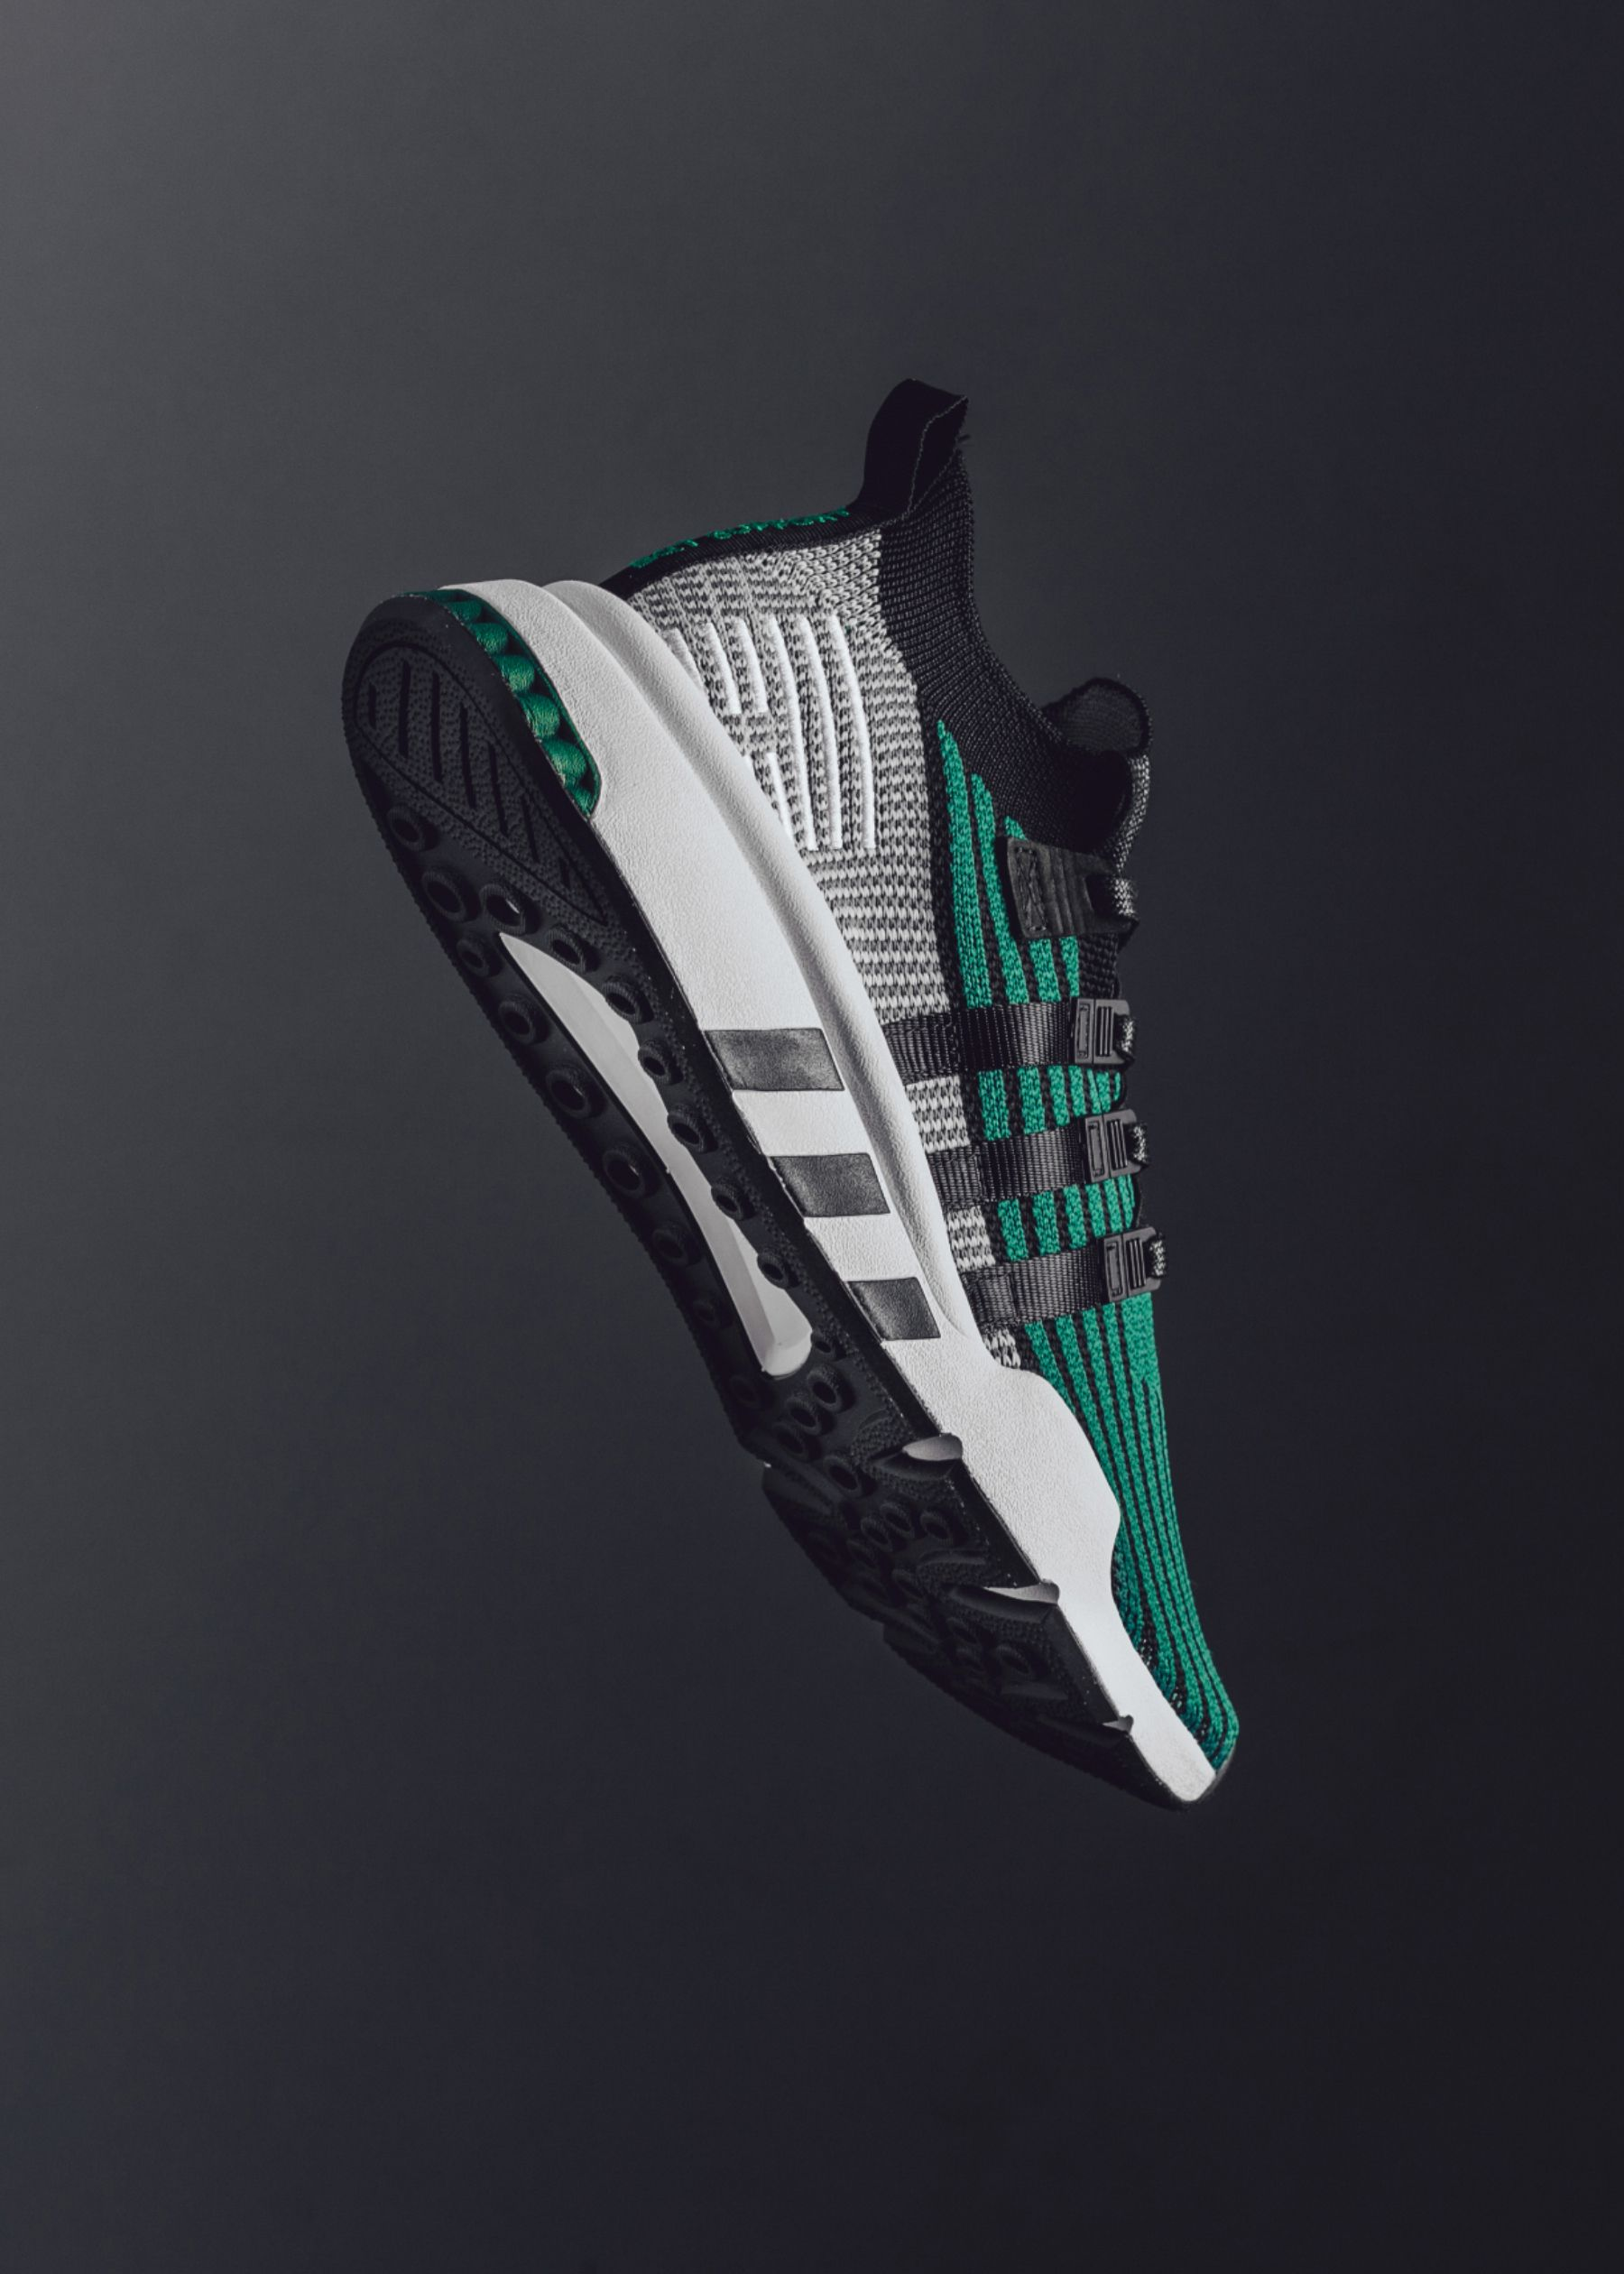 lowest price 0bbf4 ccdbc Adidas Originals EQT Support Mid ADV Primeknit